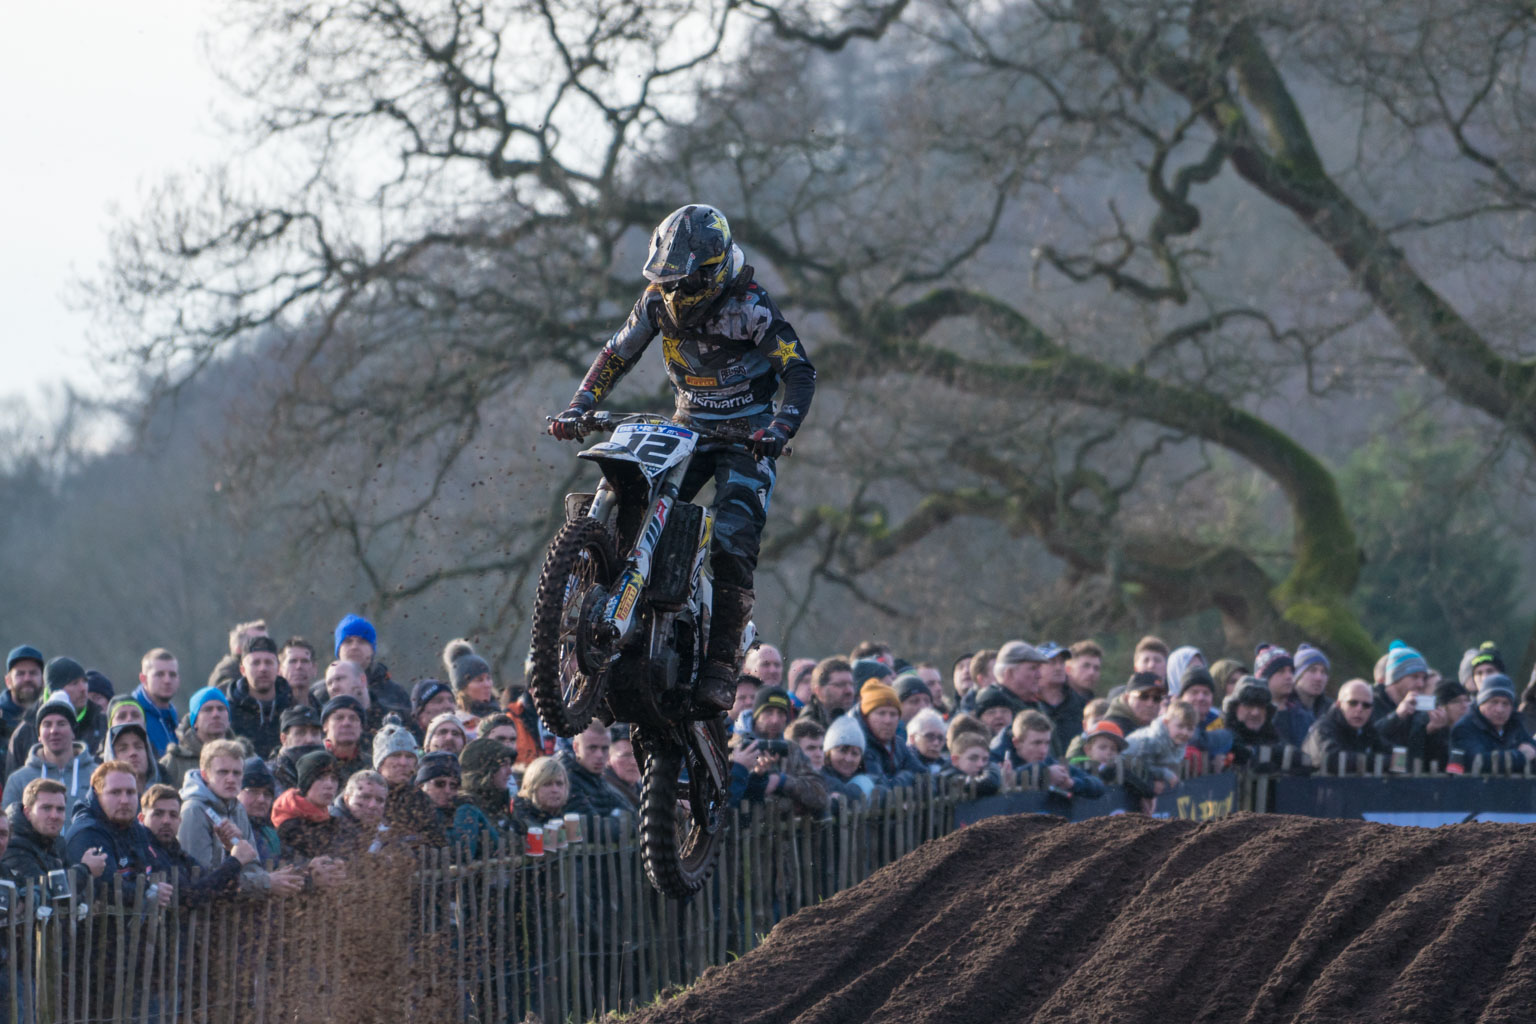 Max Nagl won the MX1 overall and Superfinal